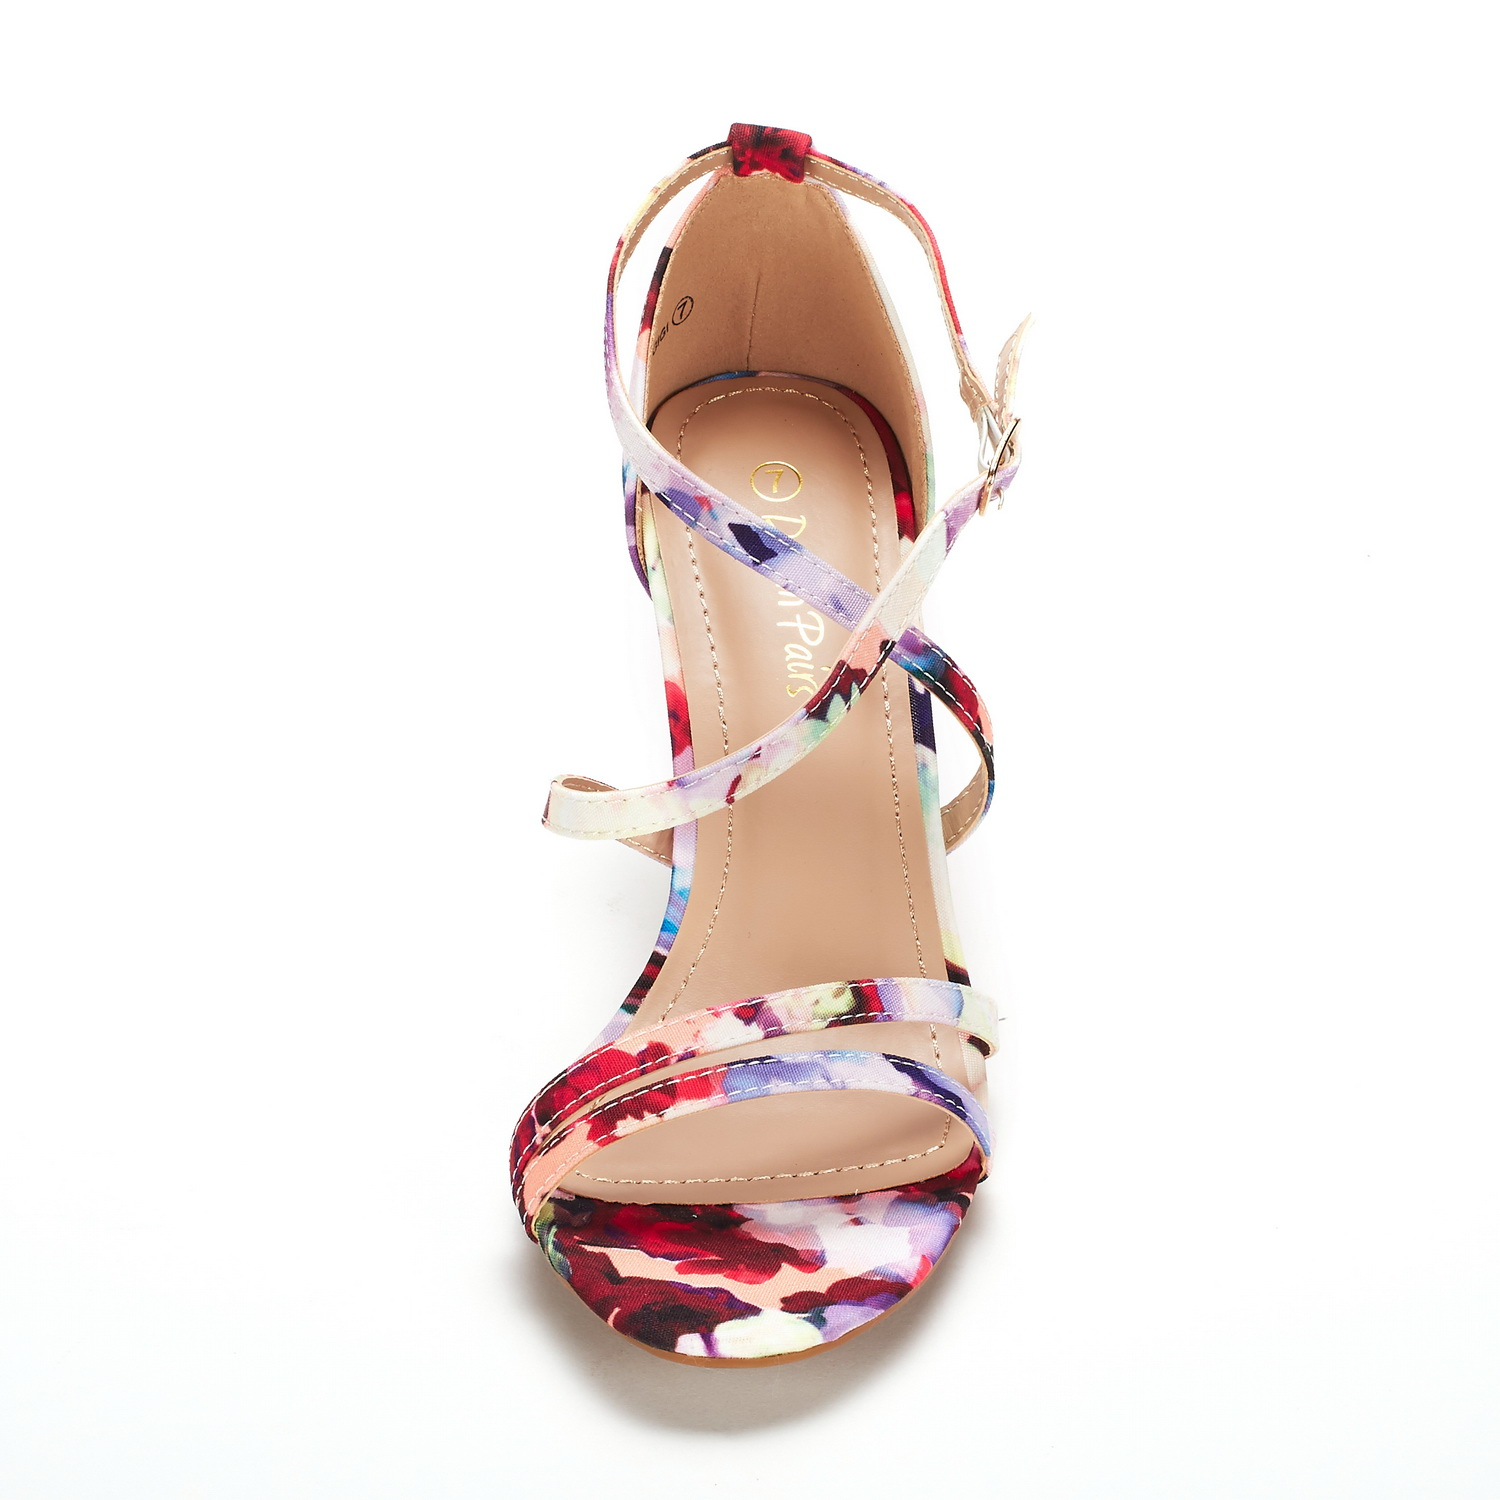 DREAM-PAIRS-Women-039-s-Ankle-Strap-High-Heel-Sandals-Dress-Shoes-Wedding-Party thumbnail 19